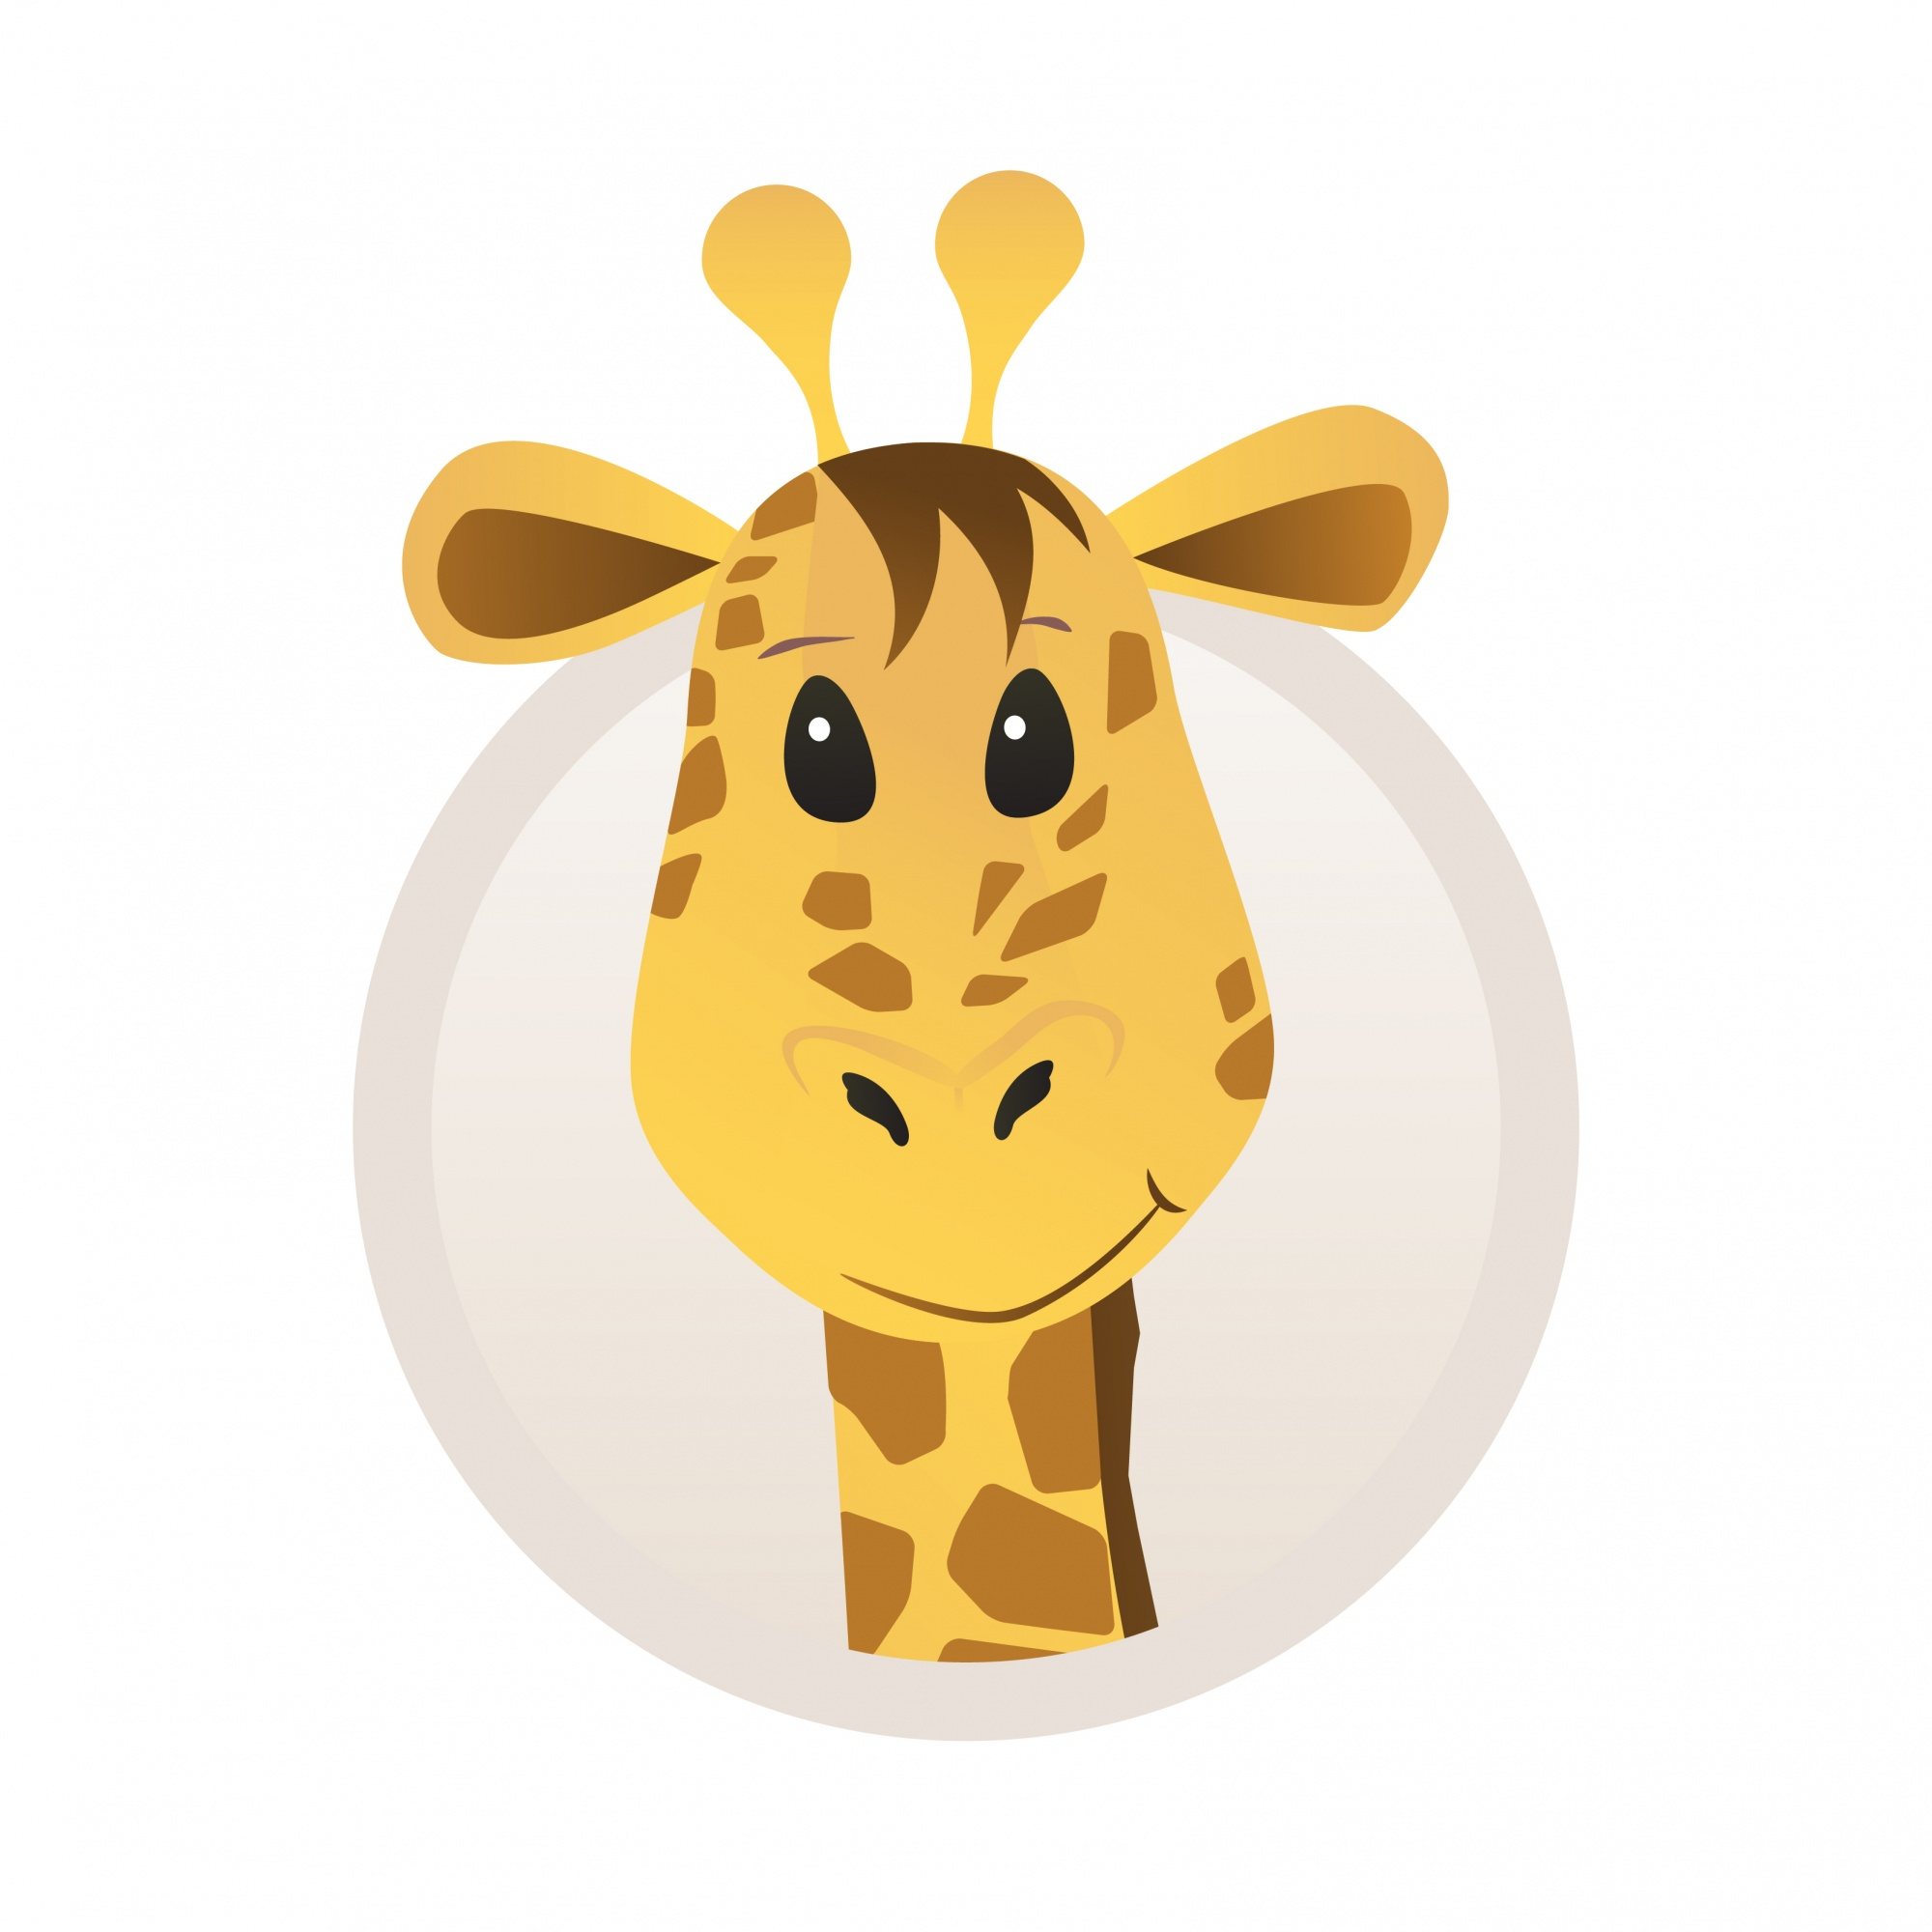 Giraffe portrait in cartoon style